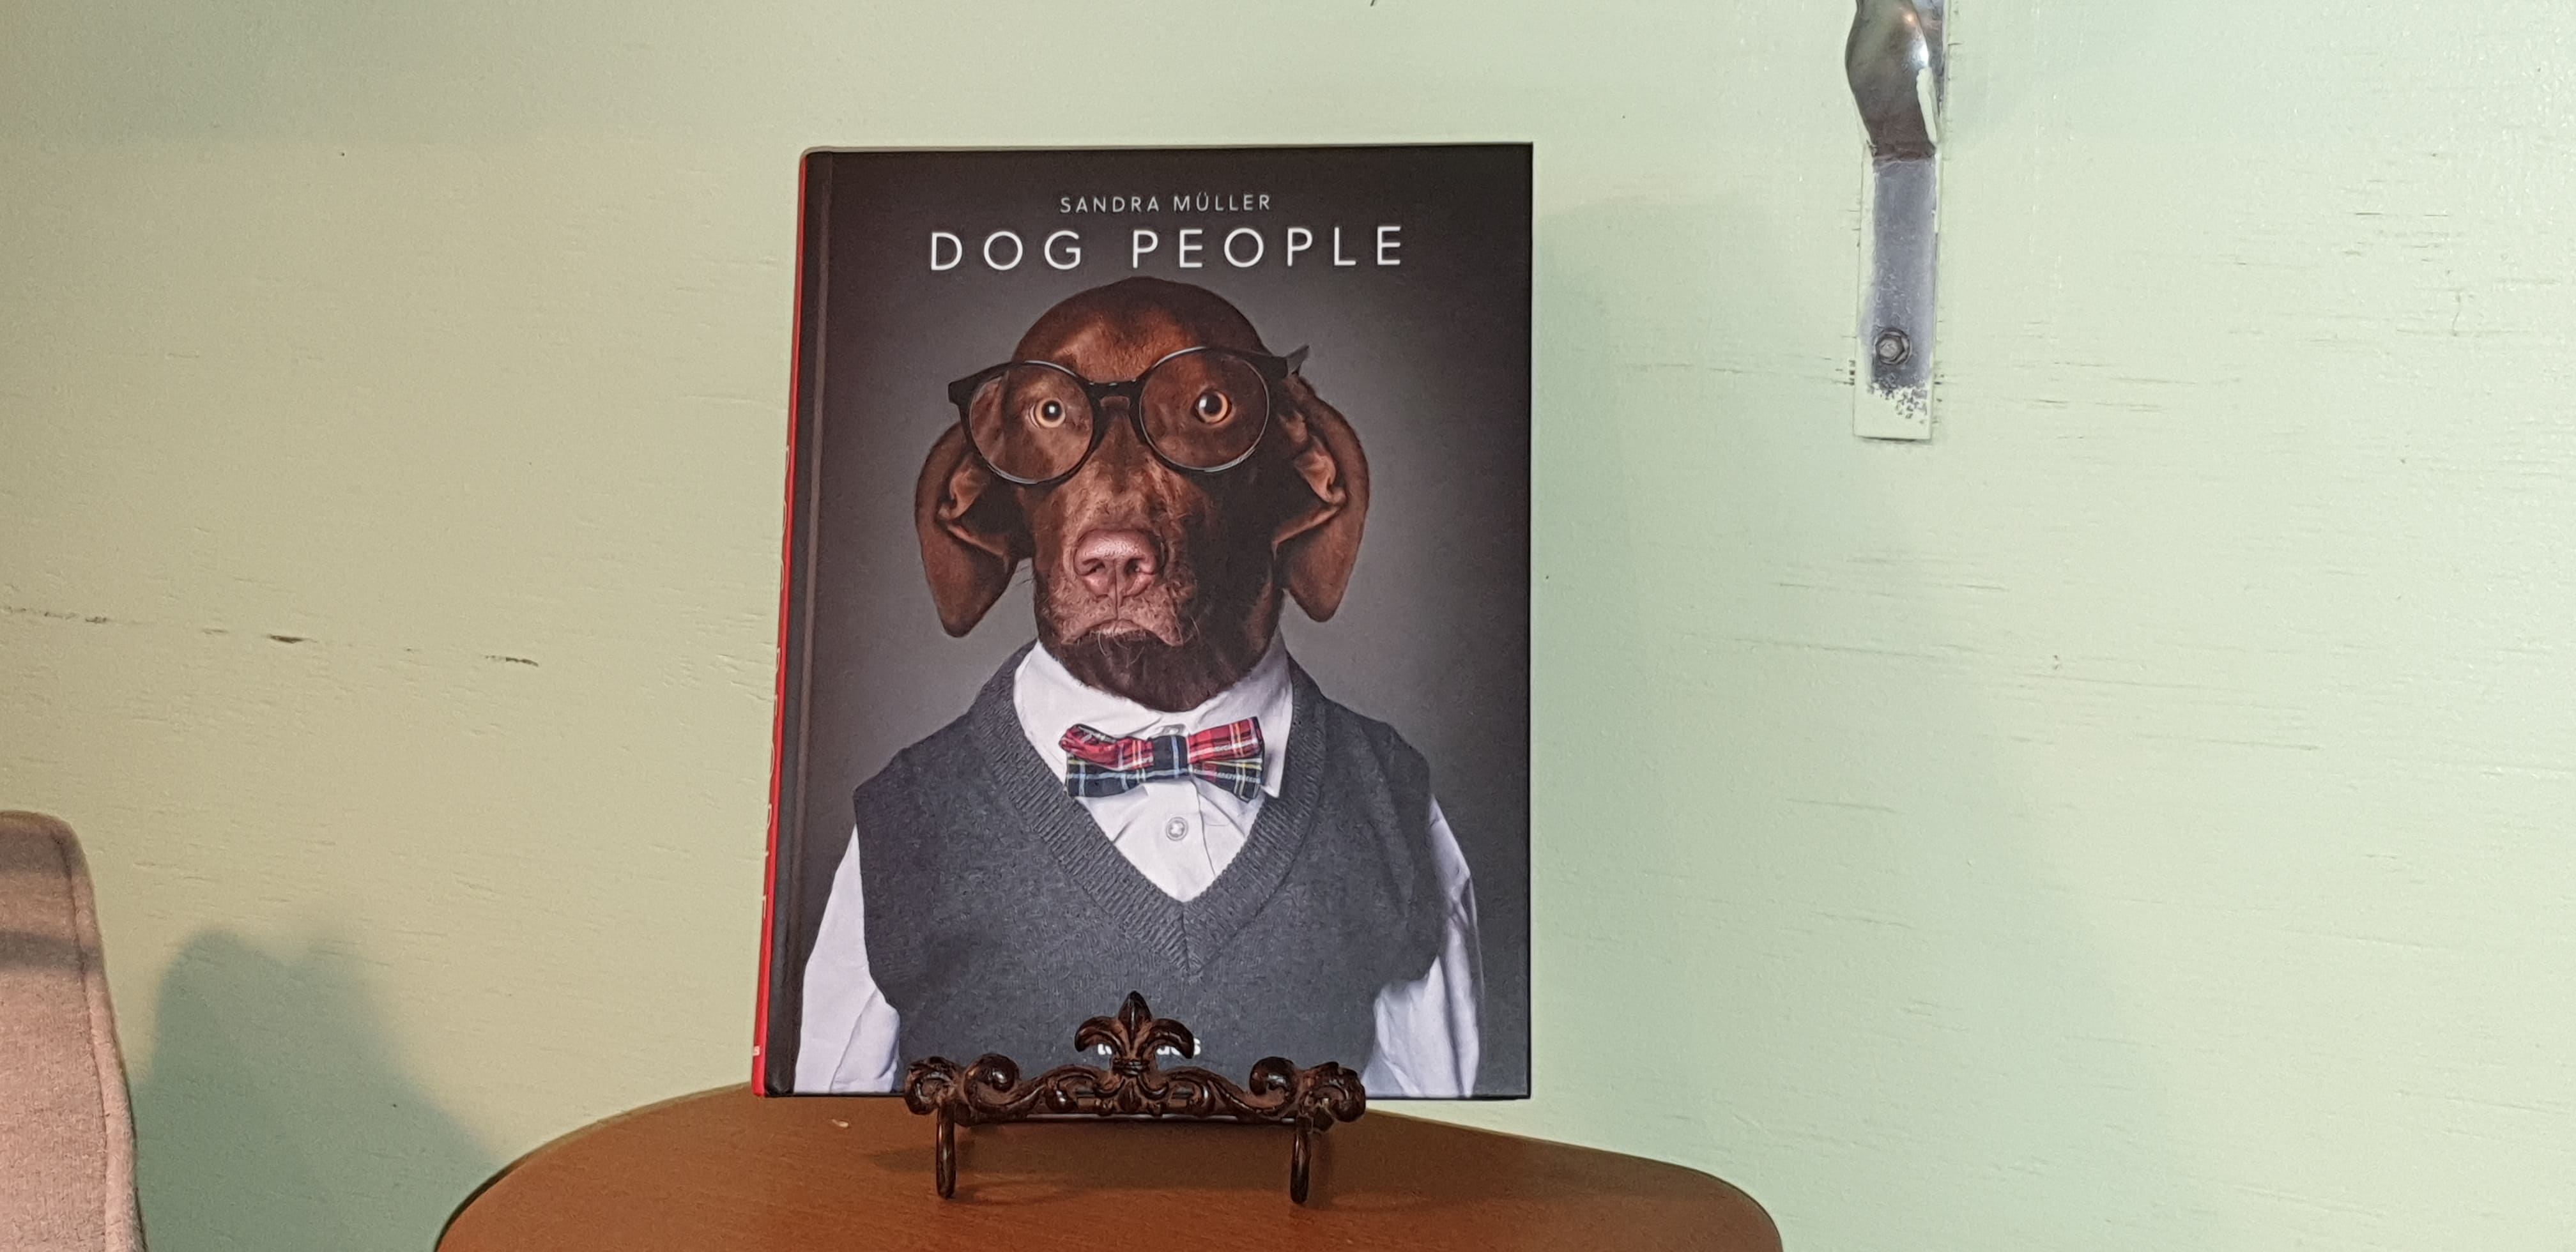 Browse through this quirky book at your leisure. gallery image